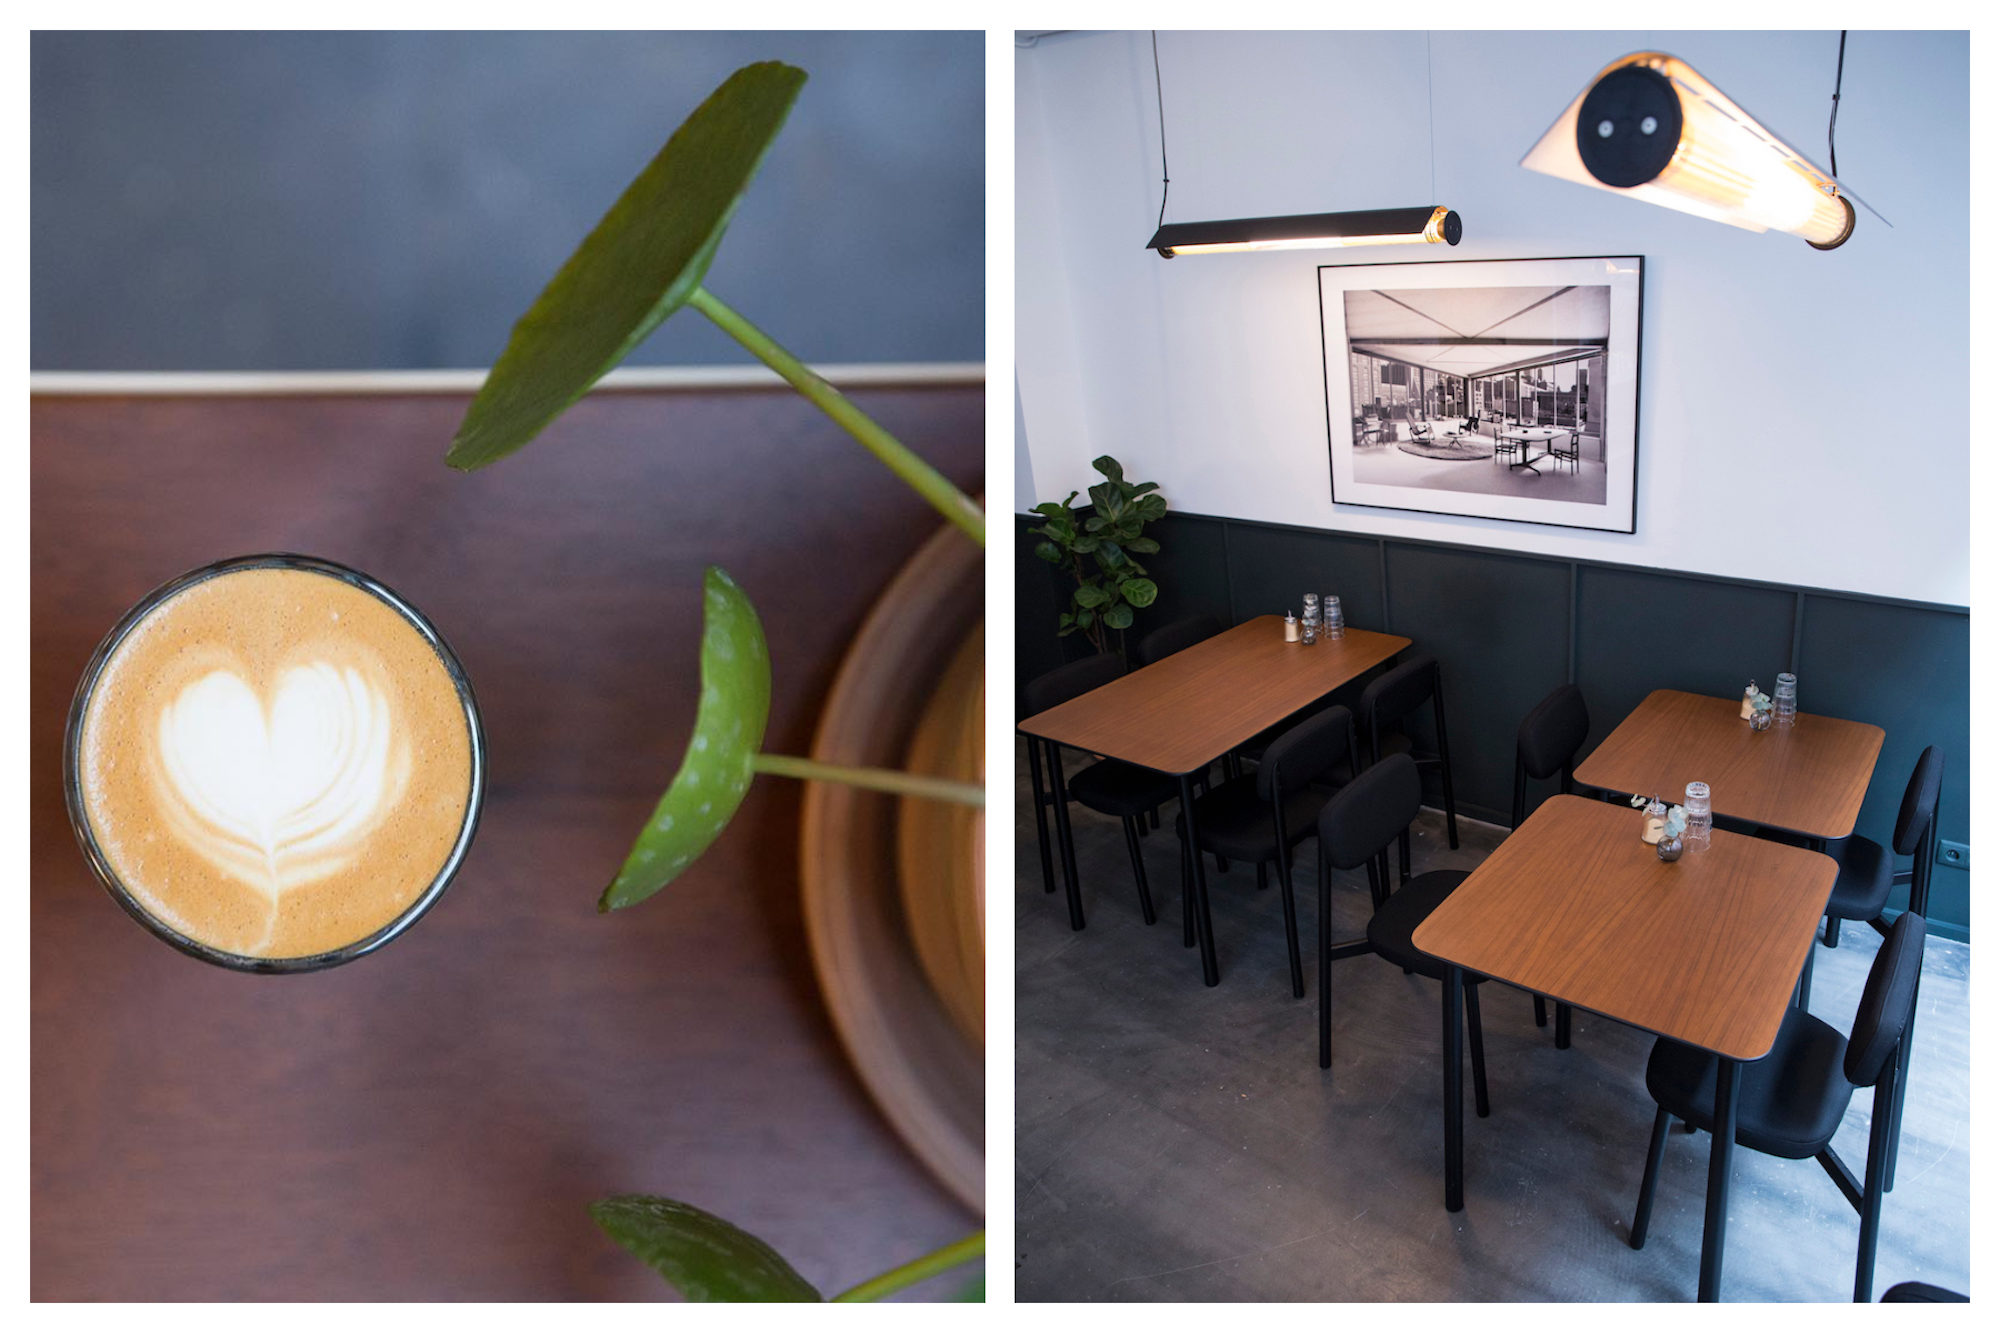 Creamy coffee on a table next to a plant (left) and beautiful Danish-inspired Handmade tables at Residence Kann coffee shop in Paris (right).